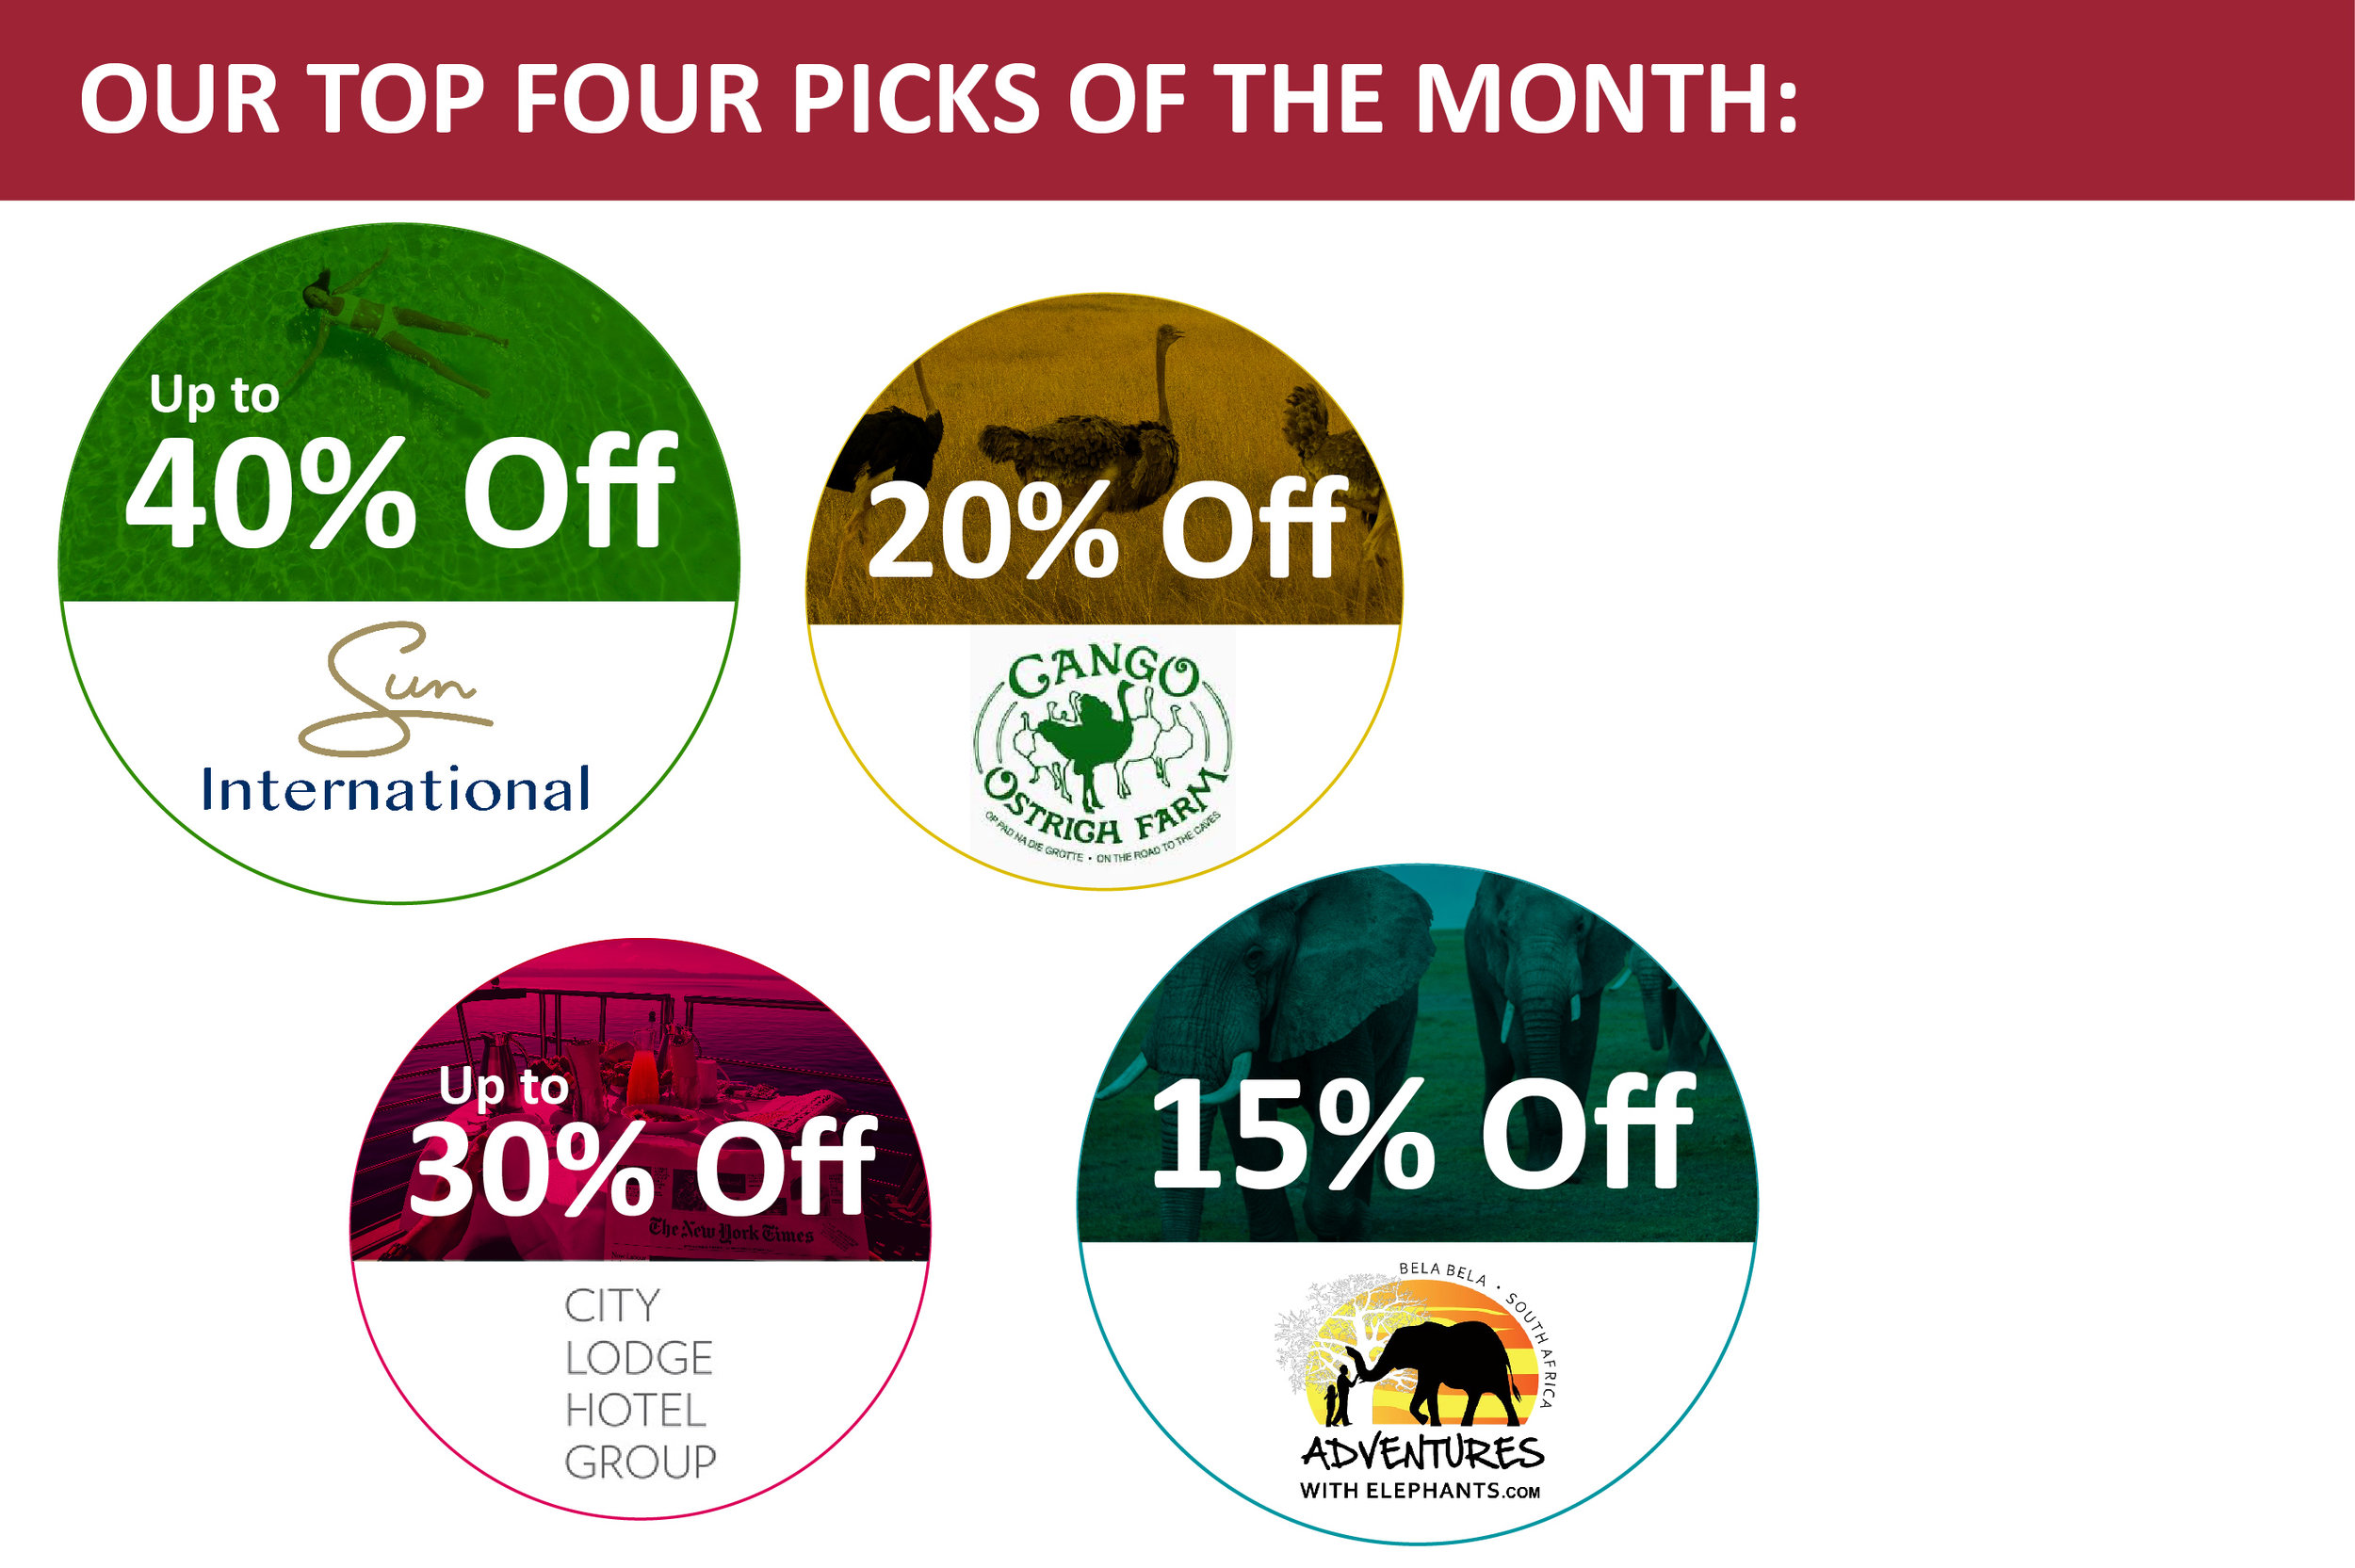 OUR TOP 4 AGILITY REWARDS TRAVEL PICKS OF THE MONTH: - Up to 40% discount from Sun City Resort Hotels20% discount on guided tours at Cango Ostrich FarmUp to 30% discount at Courtyard Hotels, City Lodges Hotels and Town Lodges15% discount off elephant activities